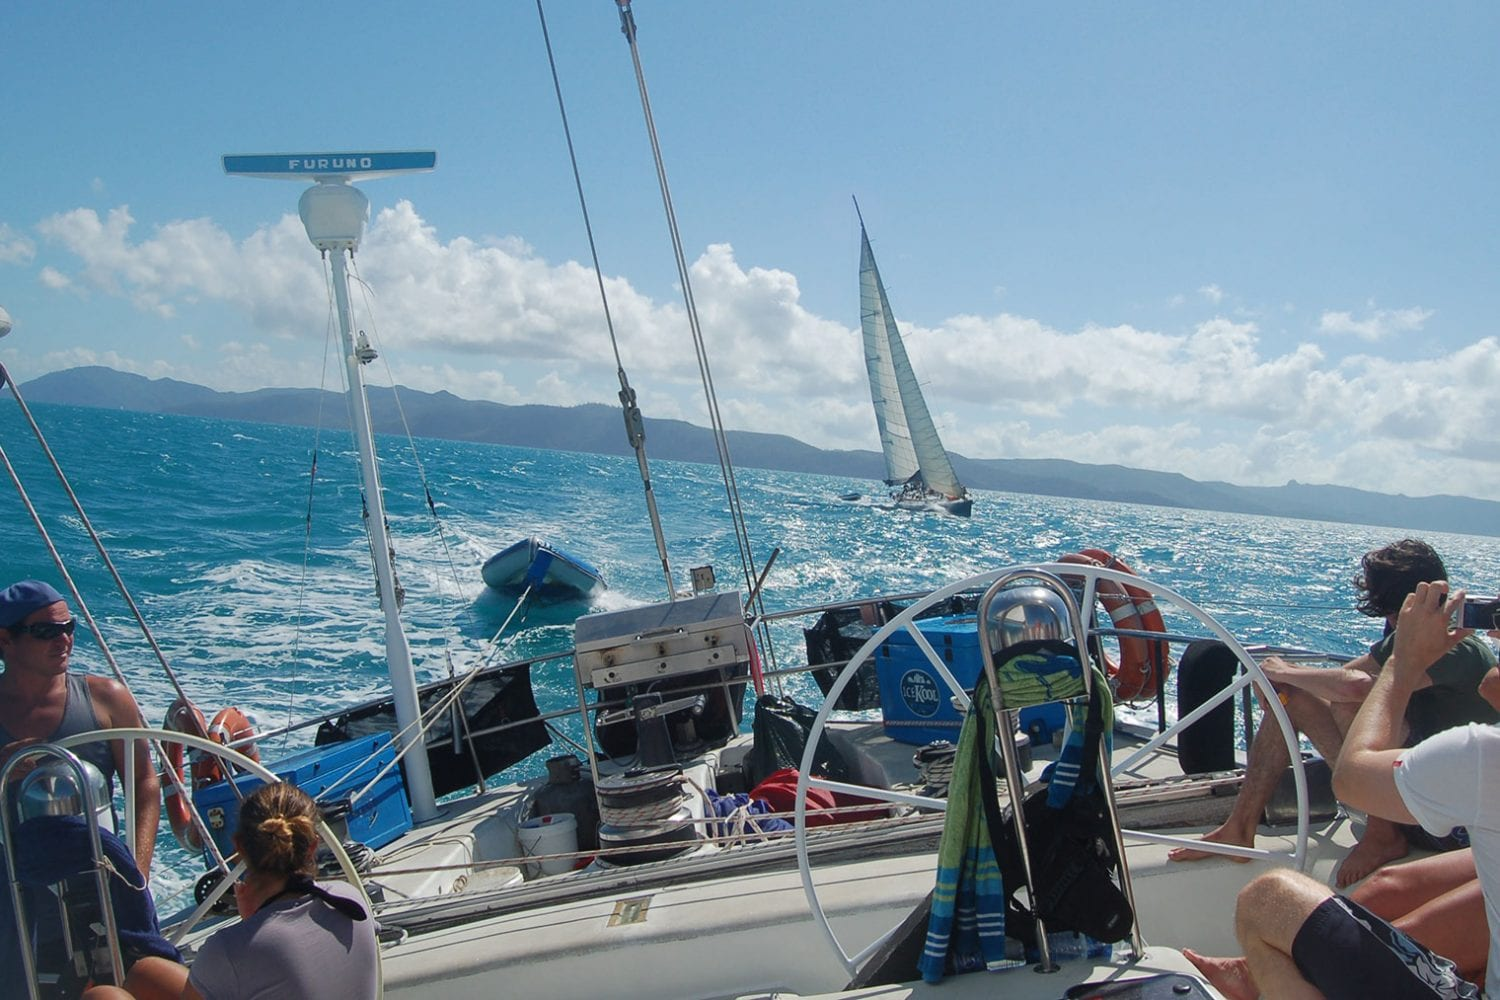 Boomerang---Sailing-Looking-Back-from-Stern---Airlie-Beach-Tourism